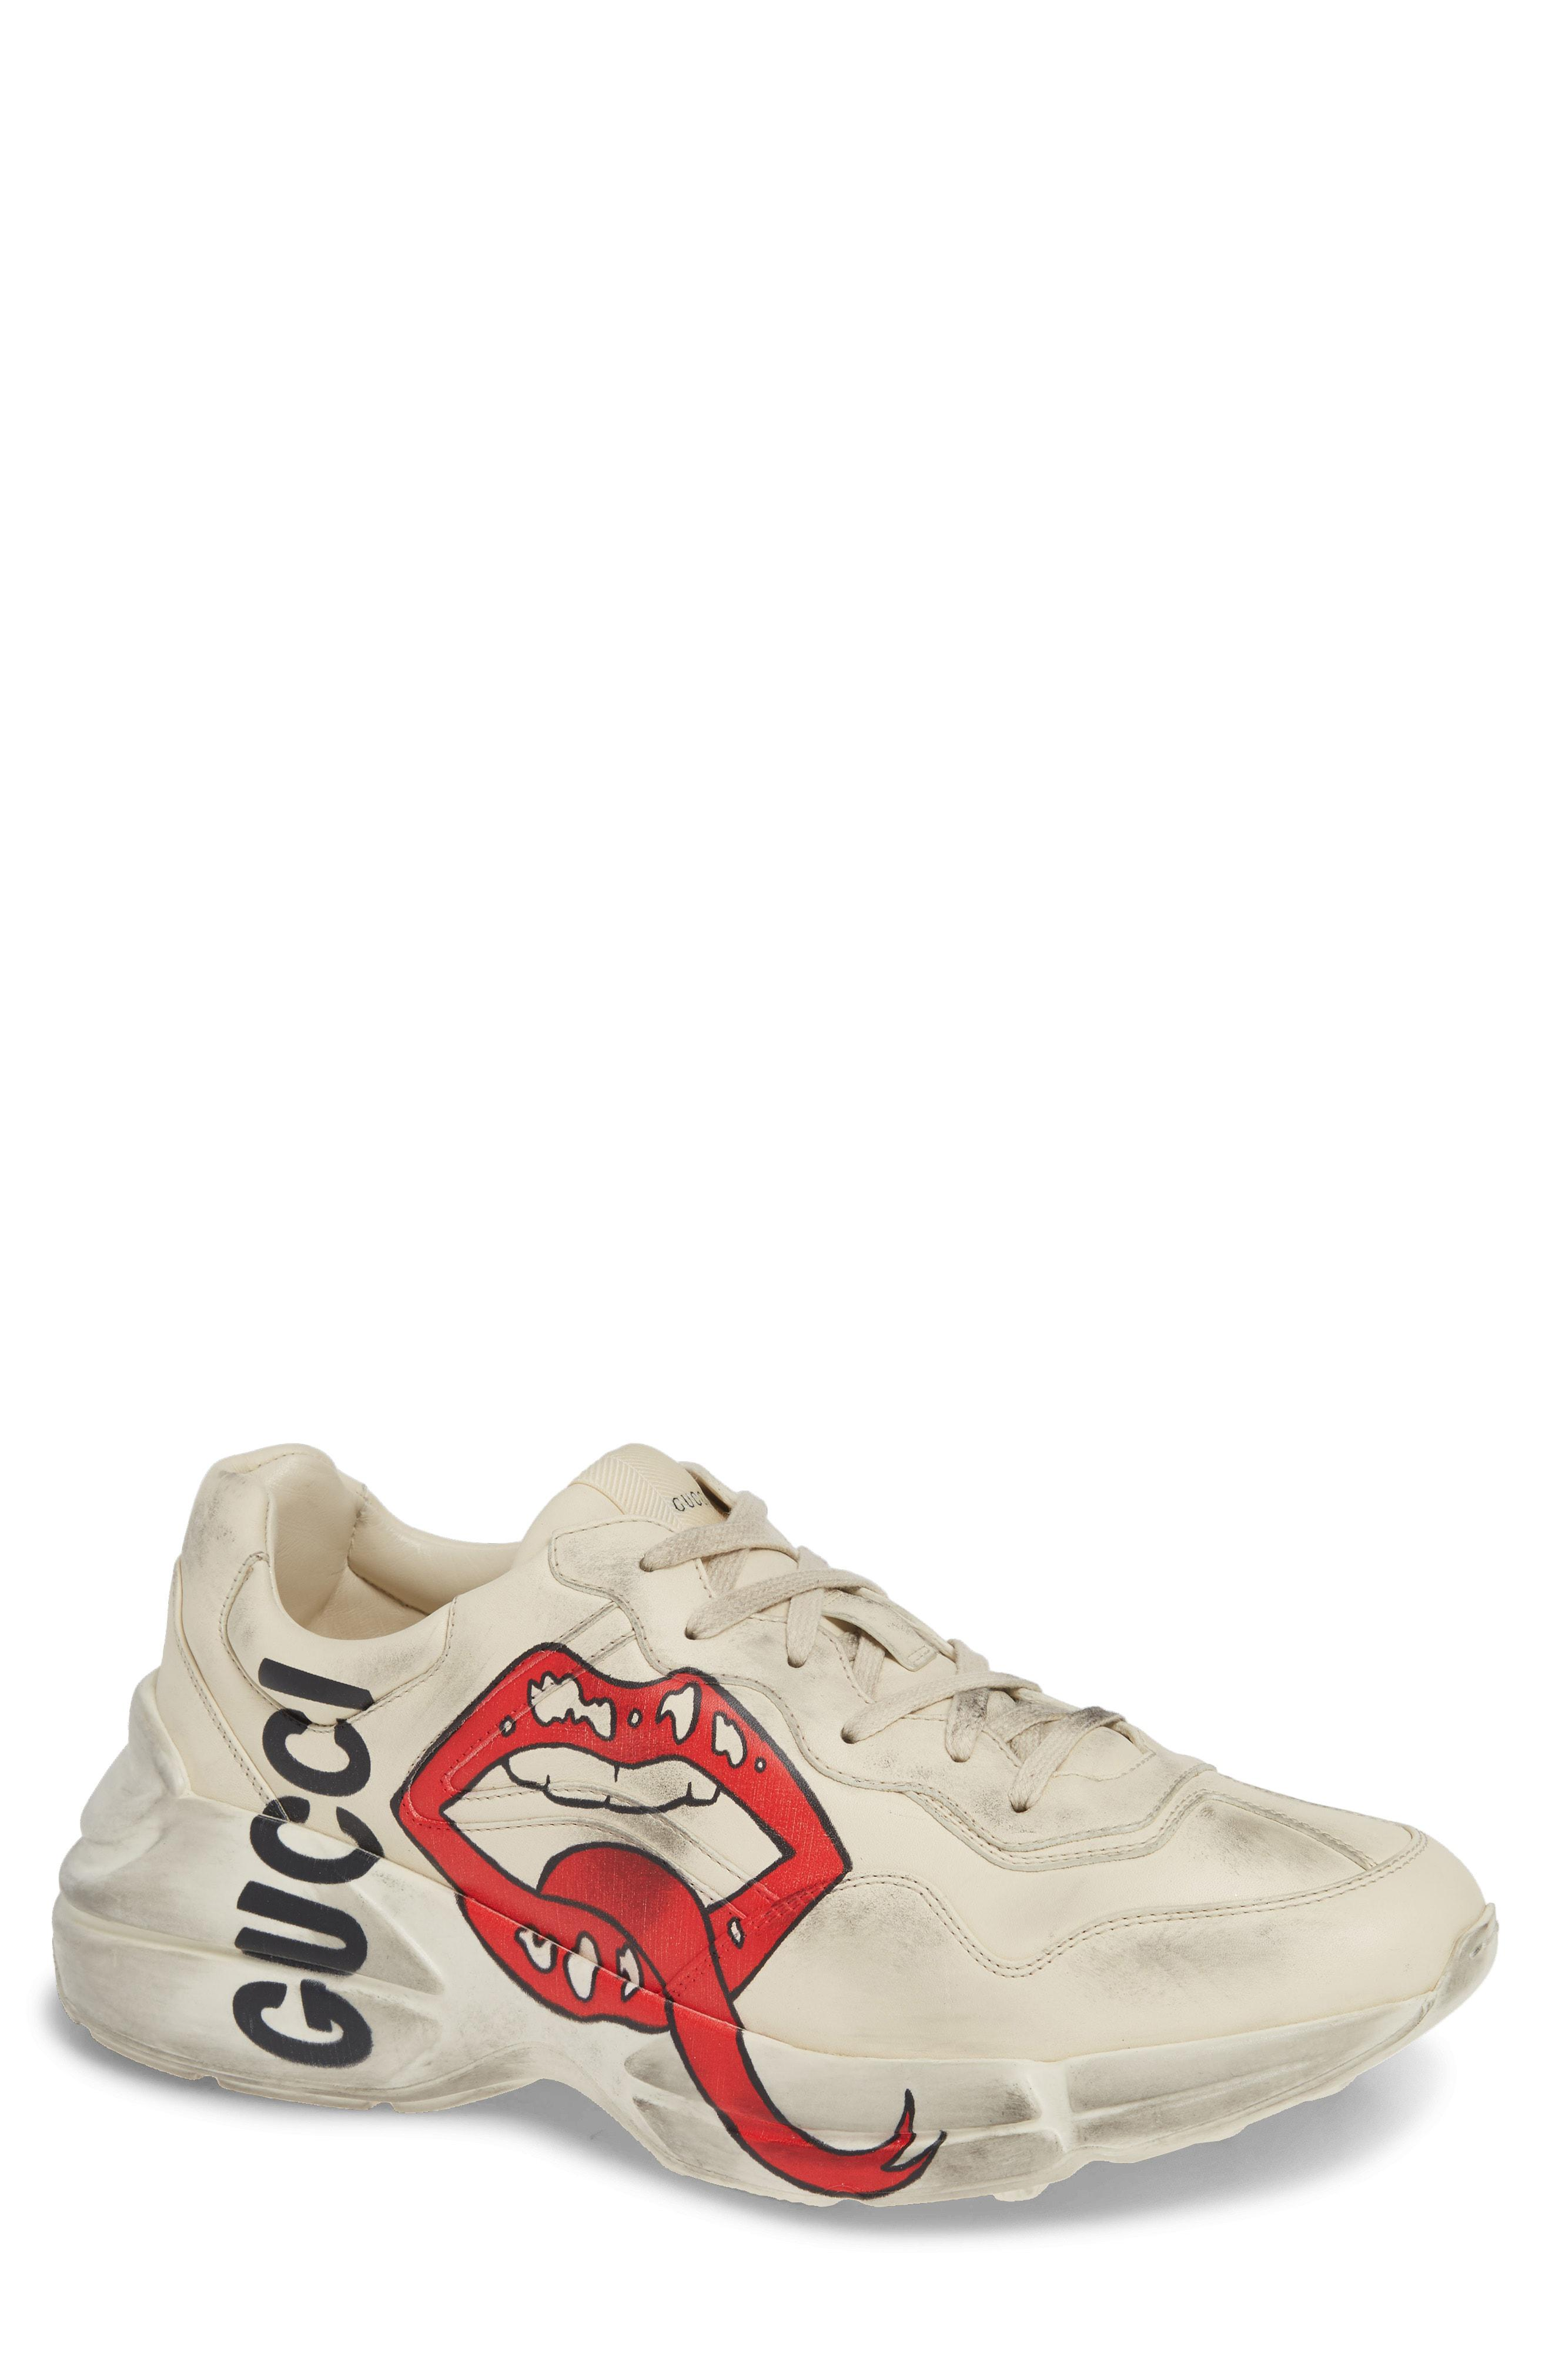 4461a0eb107 Gucci Rhyton Sneaker in White for Men - Save 4.3724696356275246% - Lyst